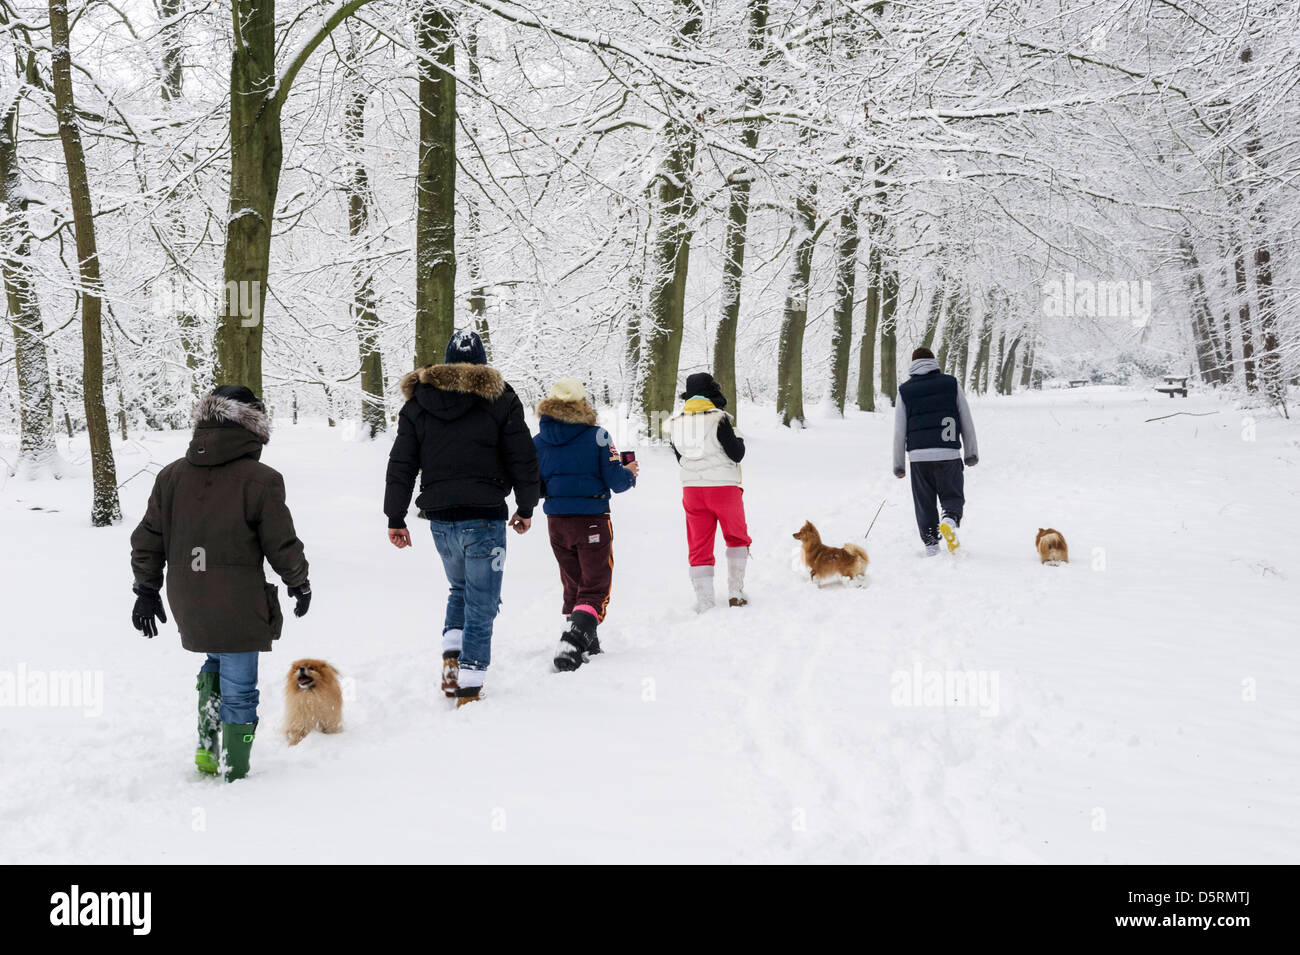 Family dog walking through snow in Thorndon Country Park, Brentwood, Essex, England, UK - Stock Image